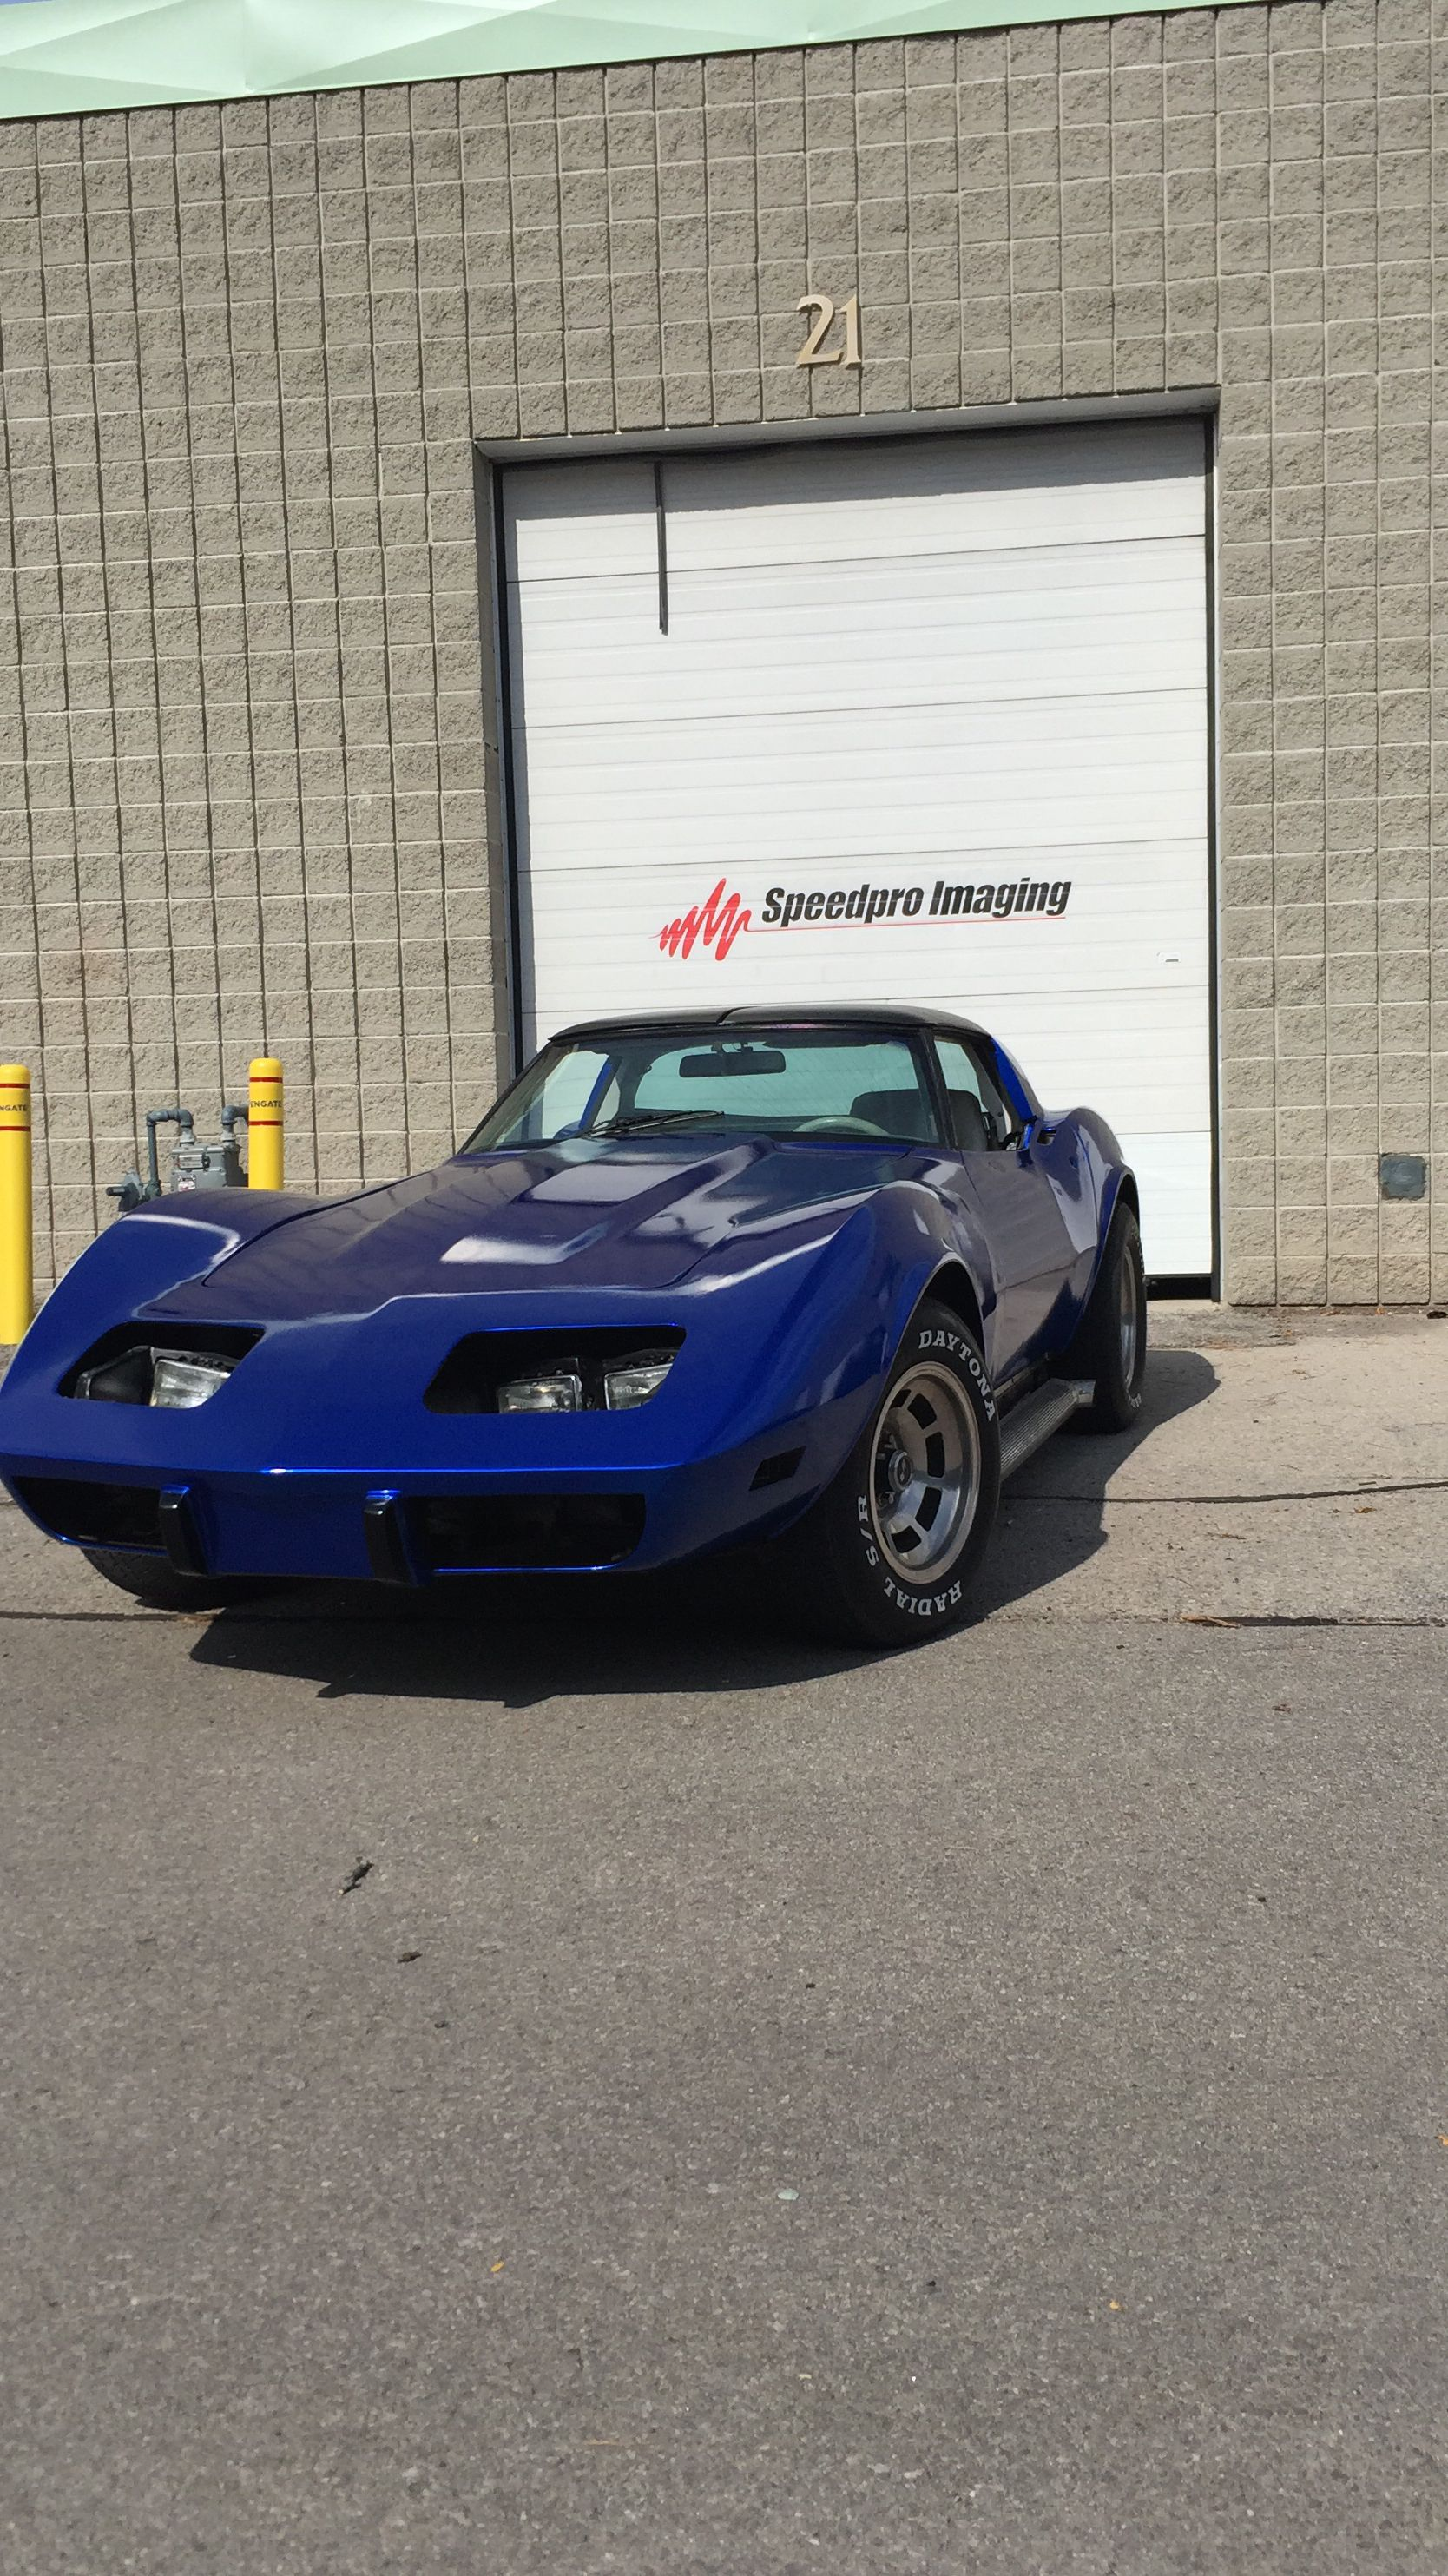 This Corvette wrap completed by Speedpro Imaging